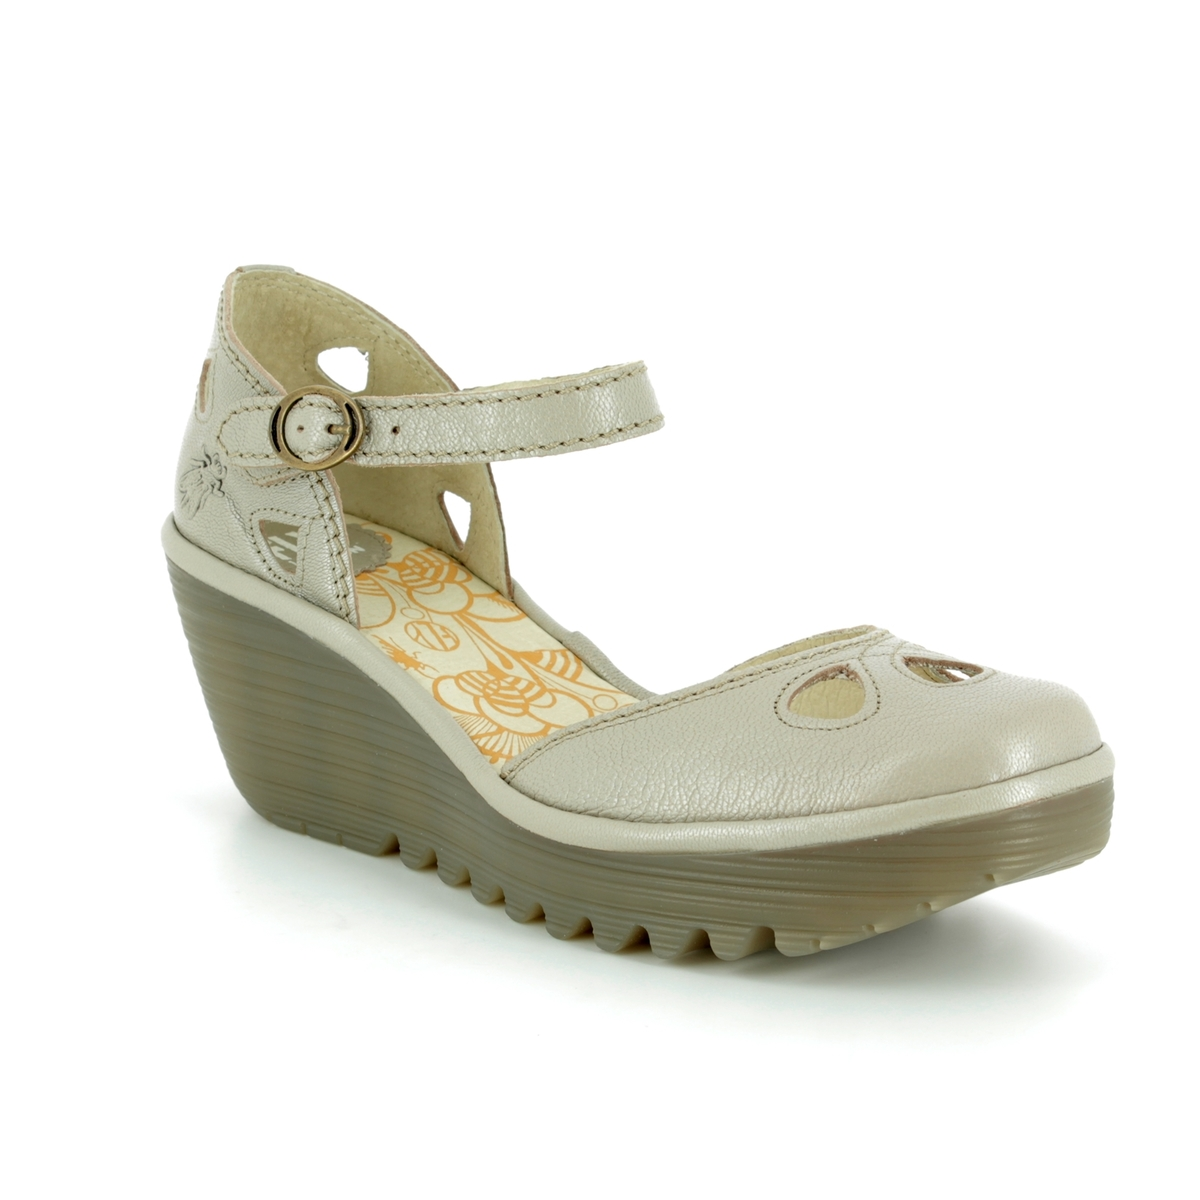 40b27ddf94bf3 Fly London Wedge Shoes - Off-white - P500016 YUNA